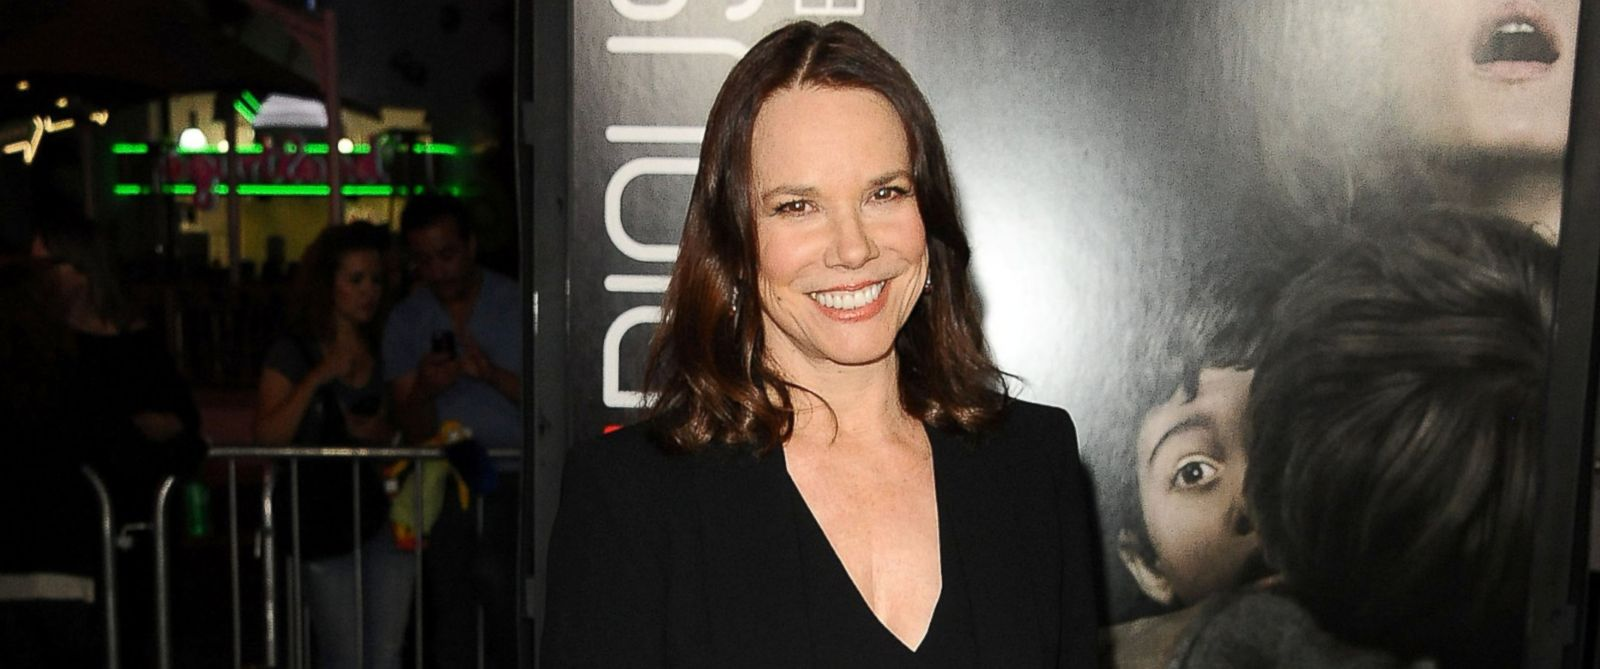 "PHOTO: Actress Barbara Hershey attends the premiere ""Insidious: Chapter 2"" at Universal CityWalk, Sept. 10, 2013 in Universal City, Calif."